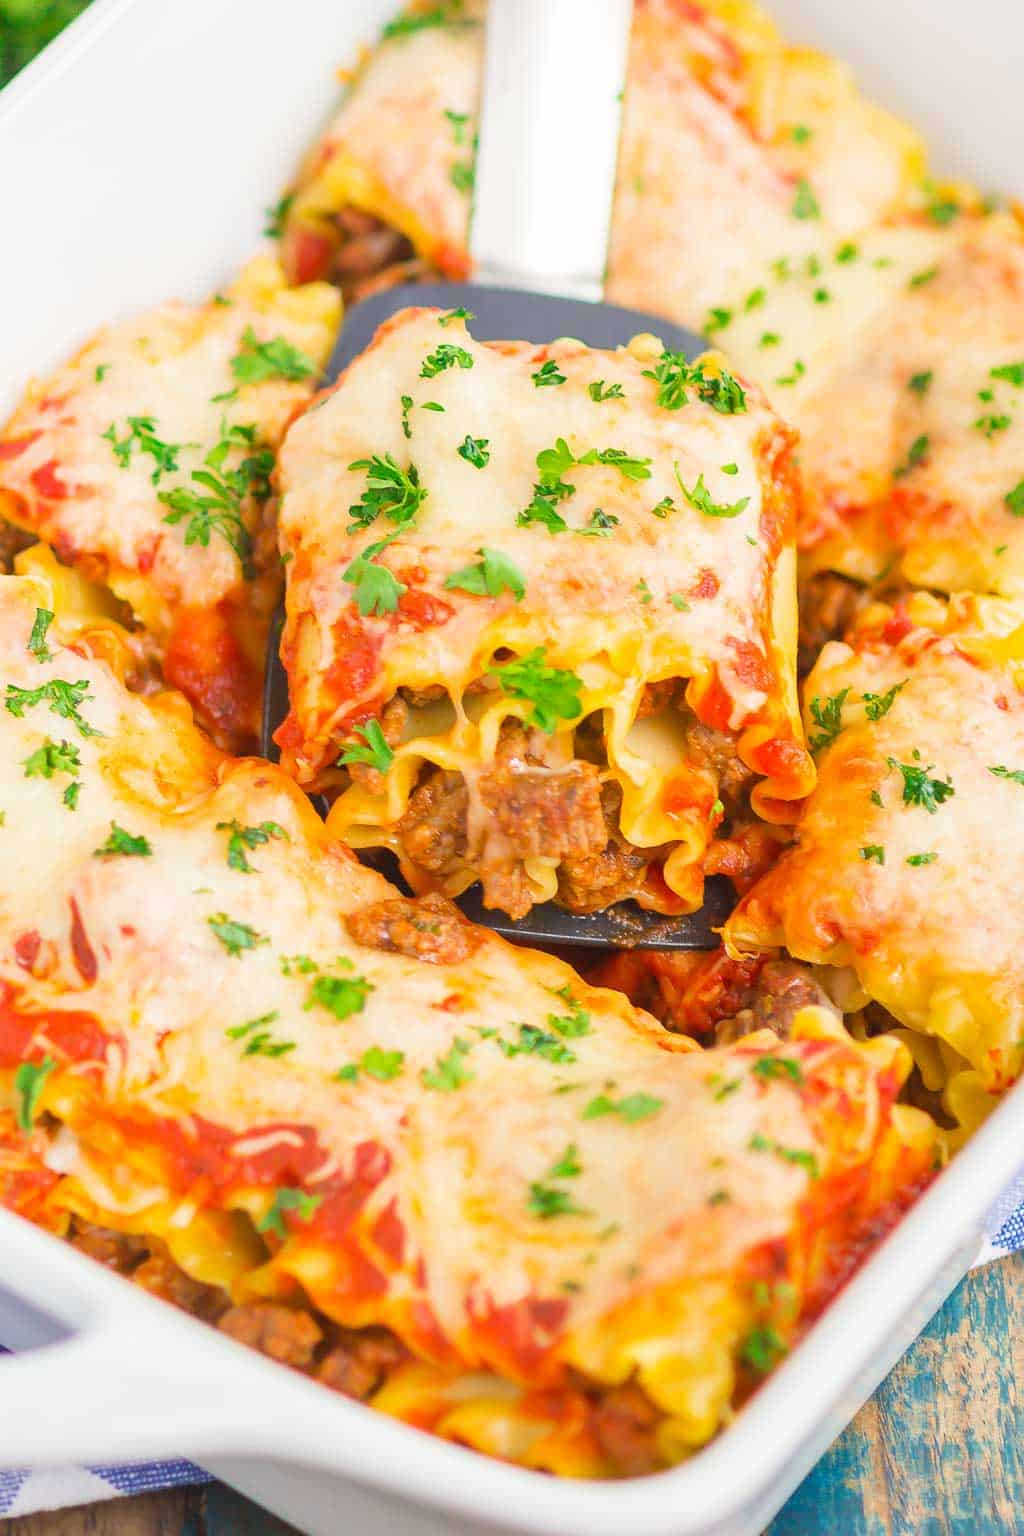 Easy Lasagna Rolls combine the classic flavors of lasagna, but without all of the prep work. With just a few ingredients, this hearty comfort dish is ready in 30 minutes!